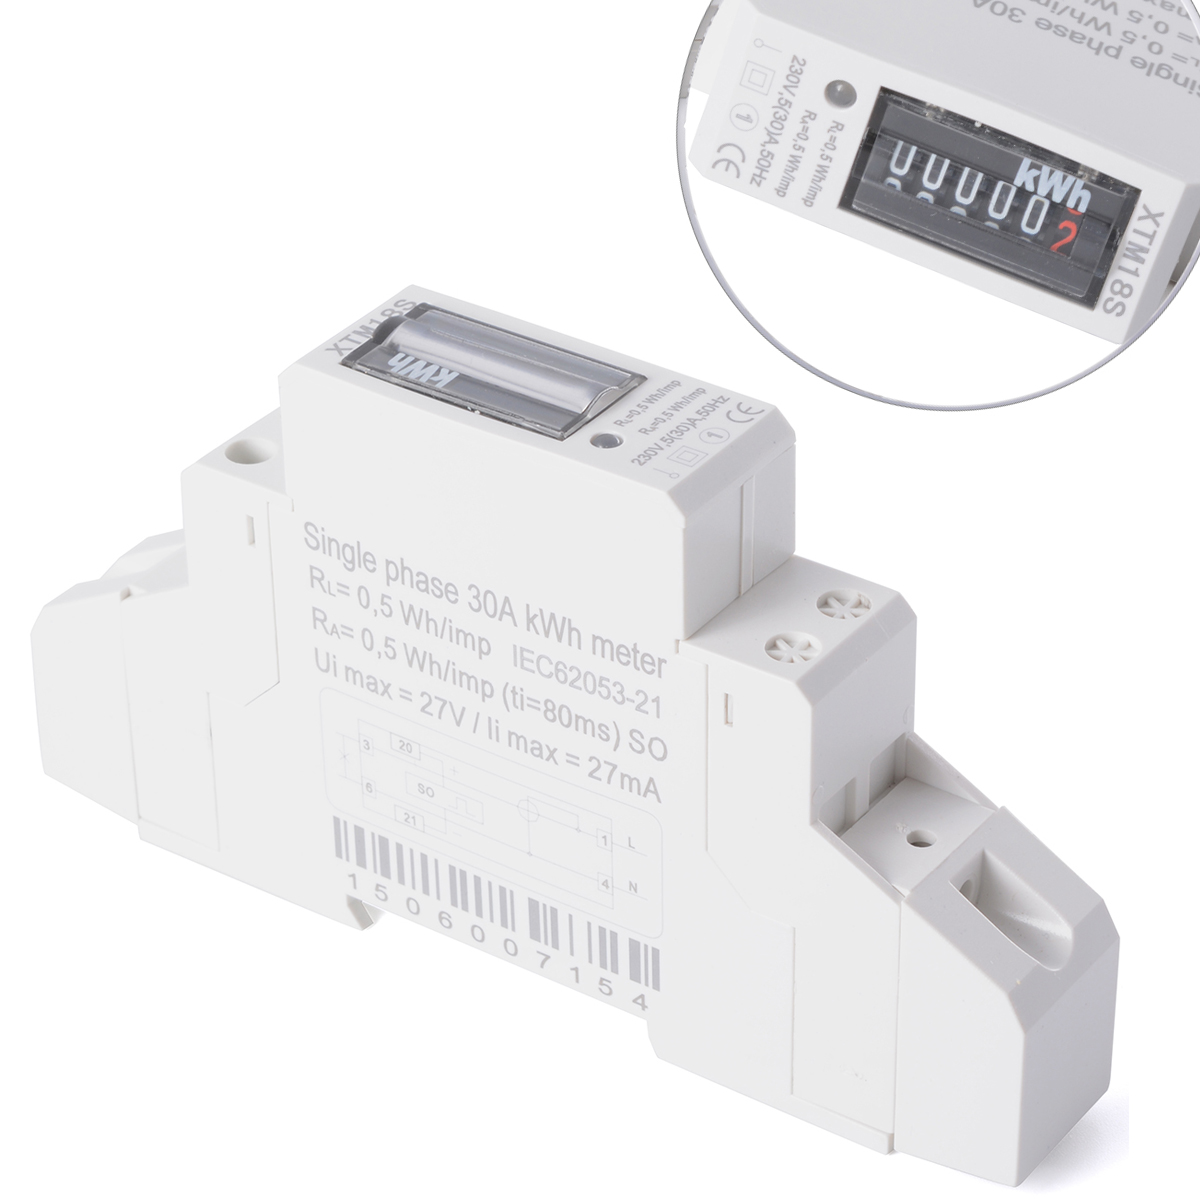 Single Phase Electricity : Hot hz a kwh meter din rail mounted single phase